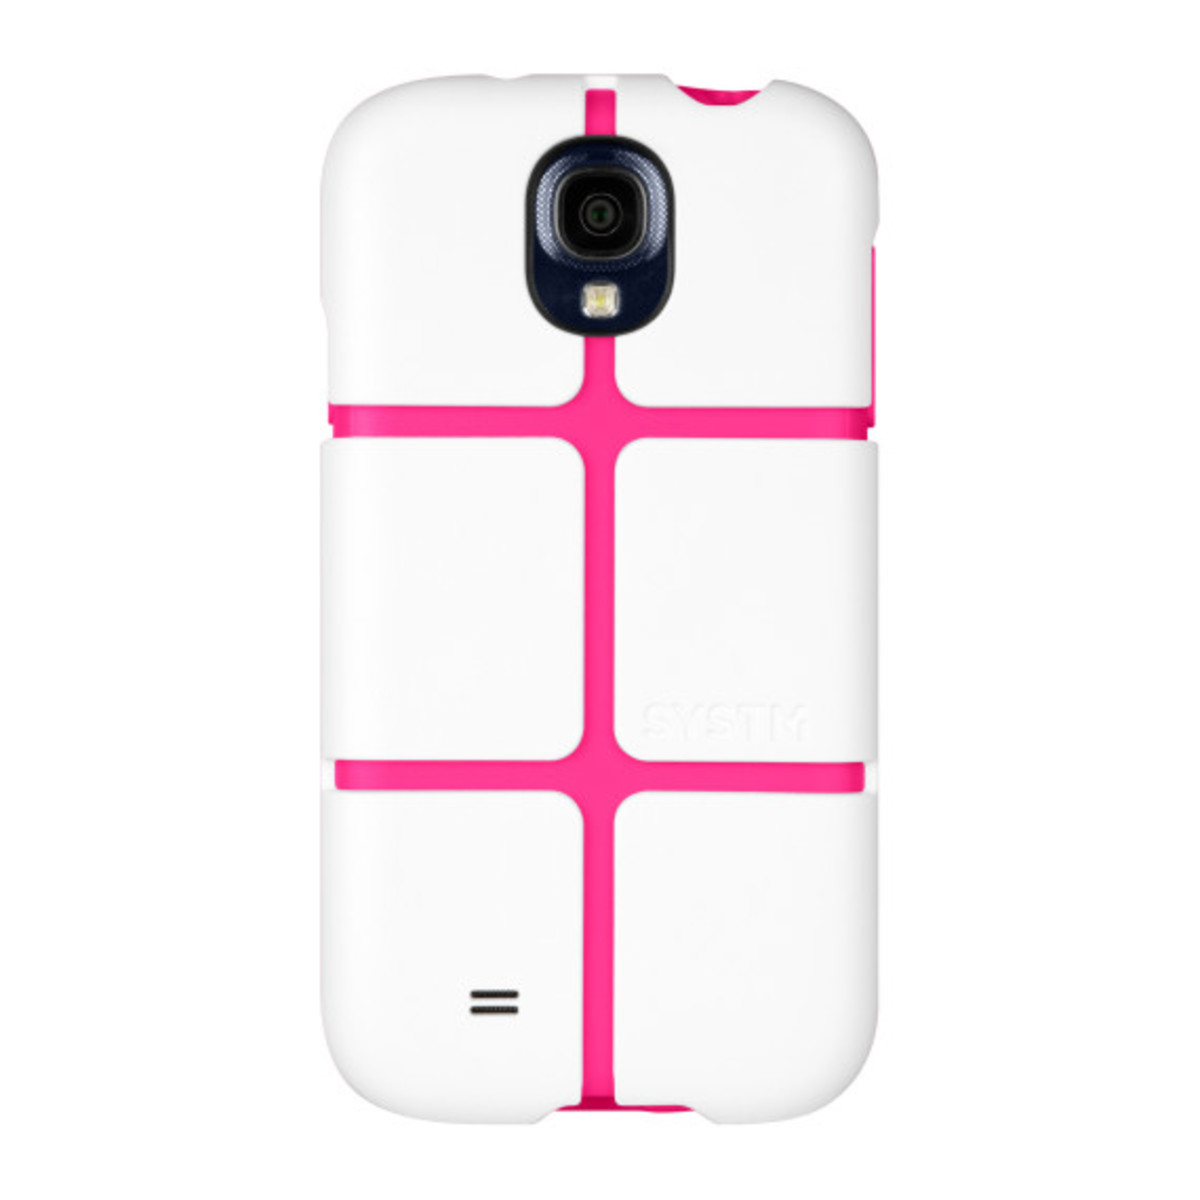 incase-samsung-galaxy-s4-systm-chisel-white-pink-1